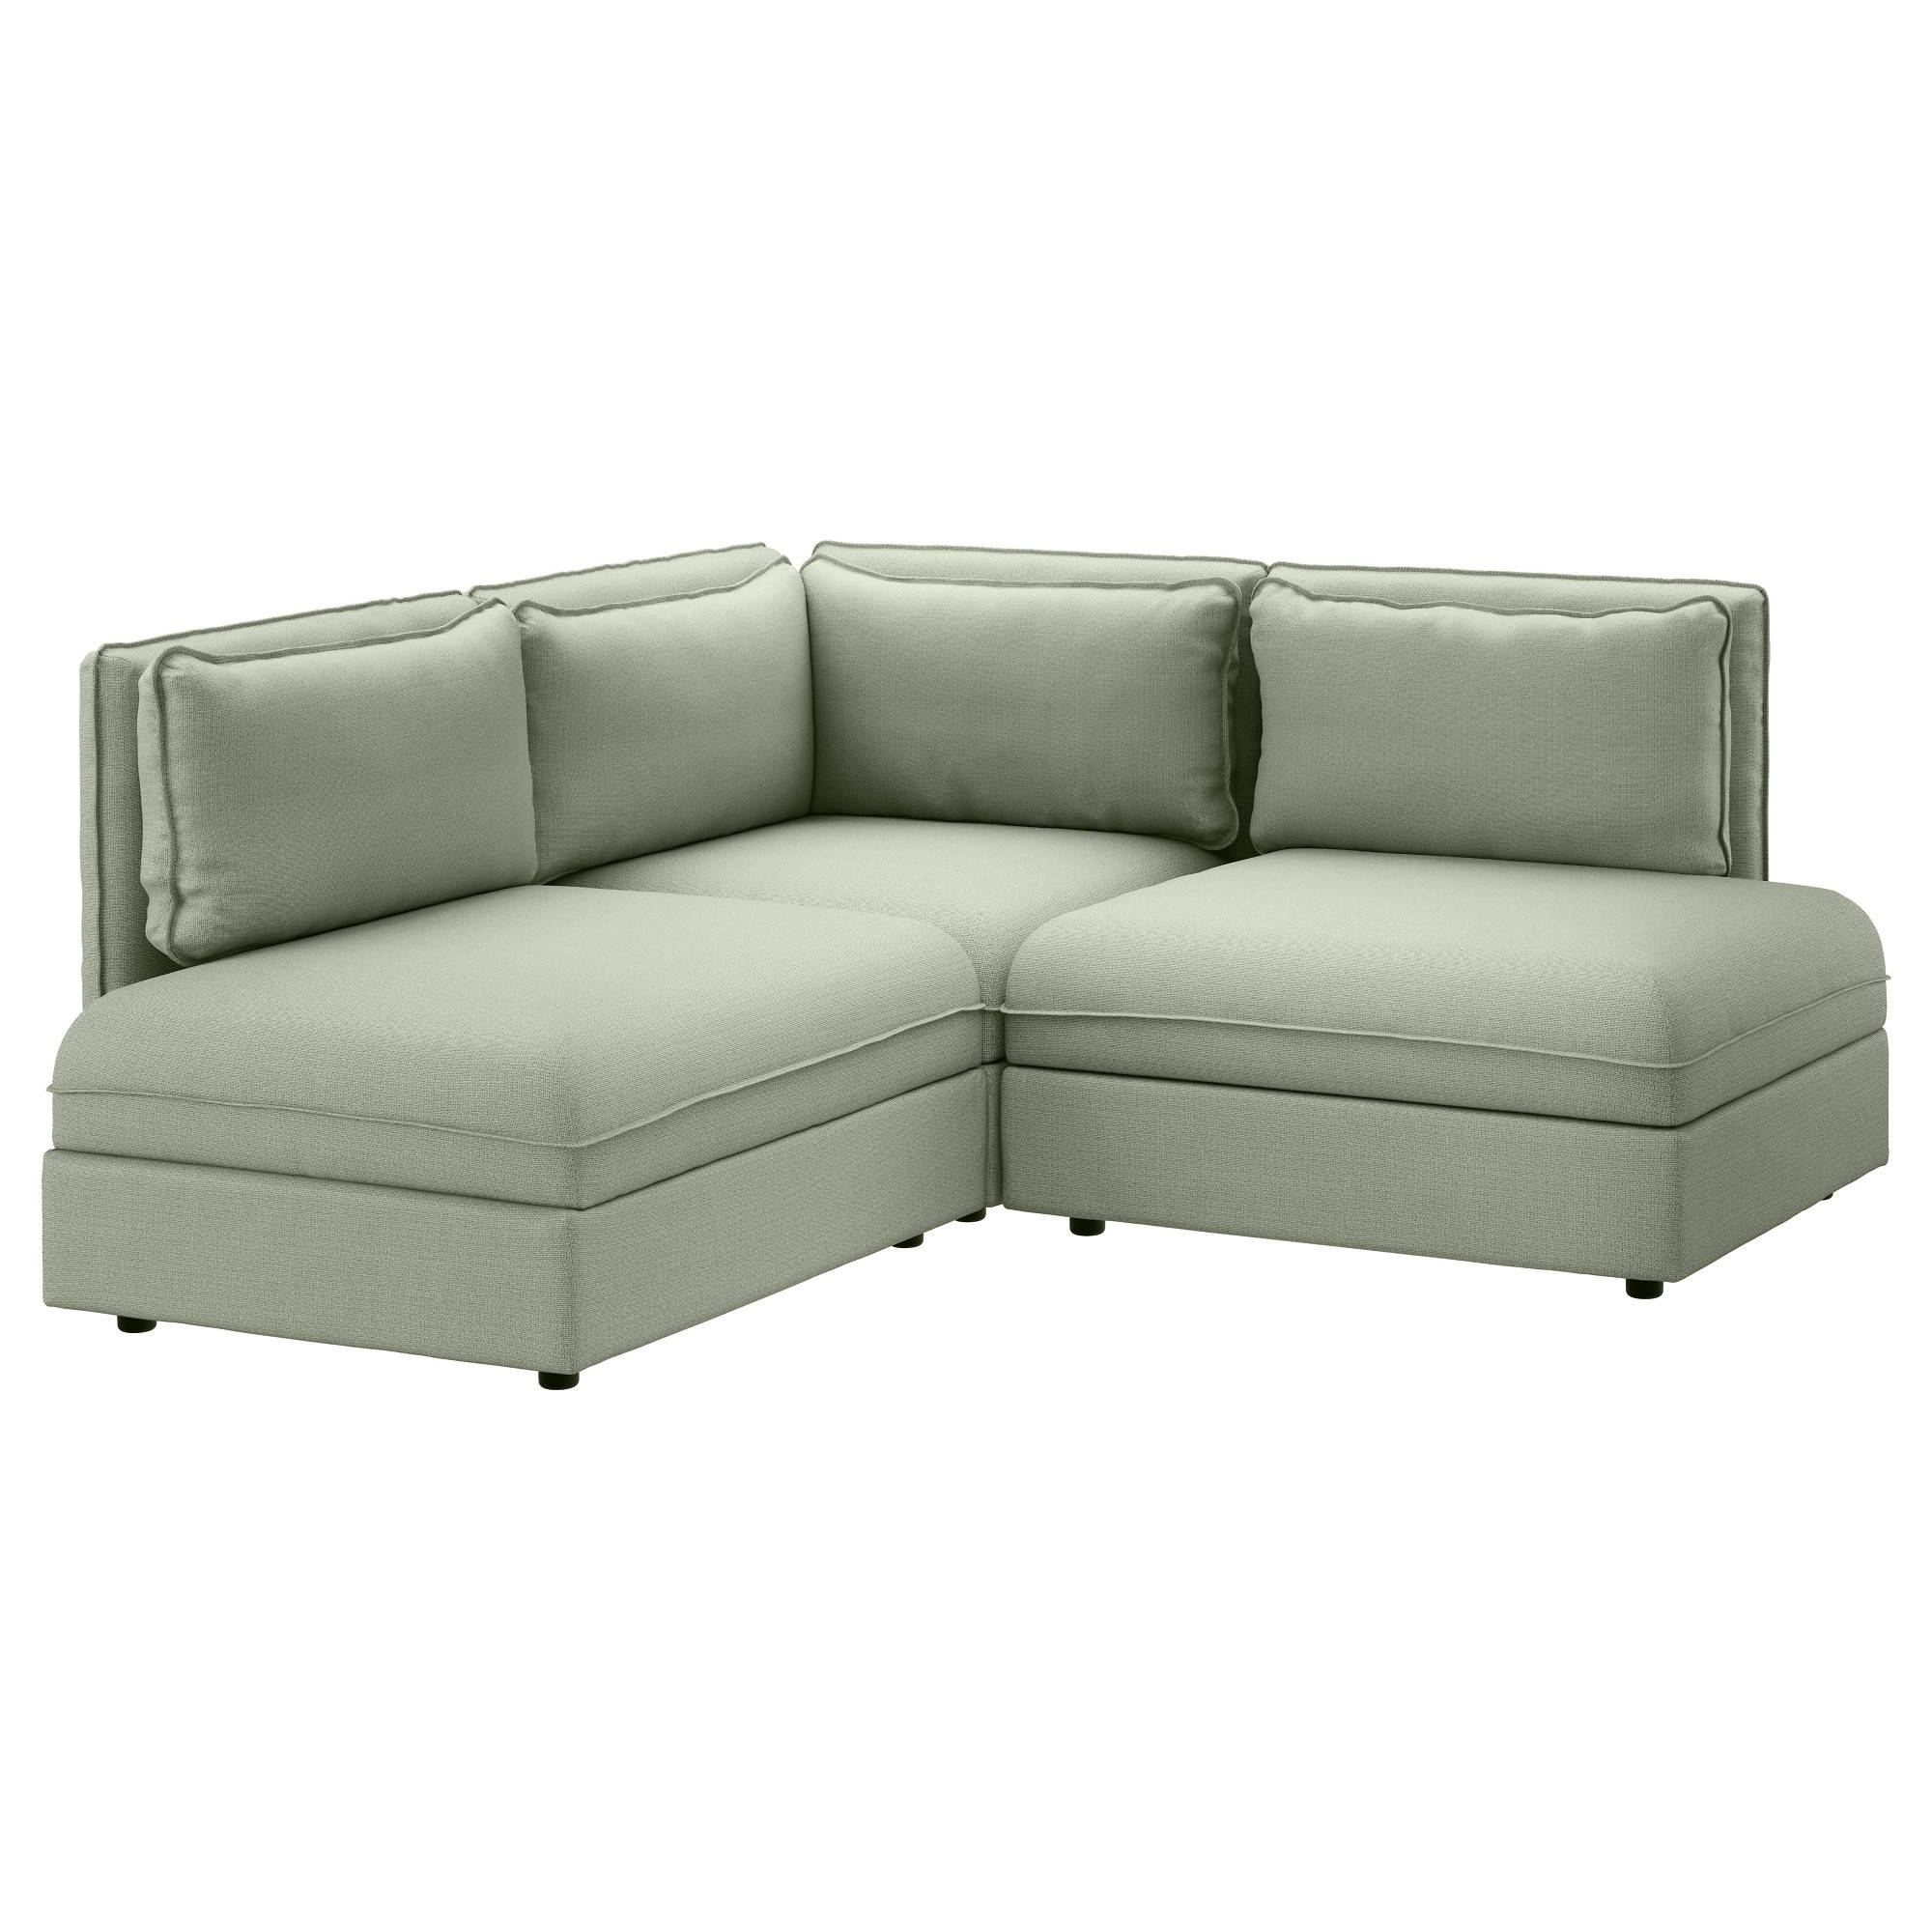 Modular Sofas & Sectionals - Ikea throughout Ikea Chaise Lounge Sofa (Image 24 of 30)